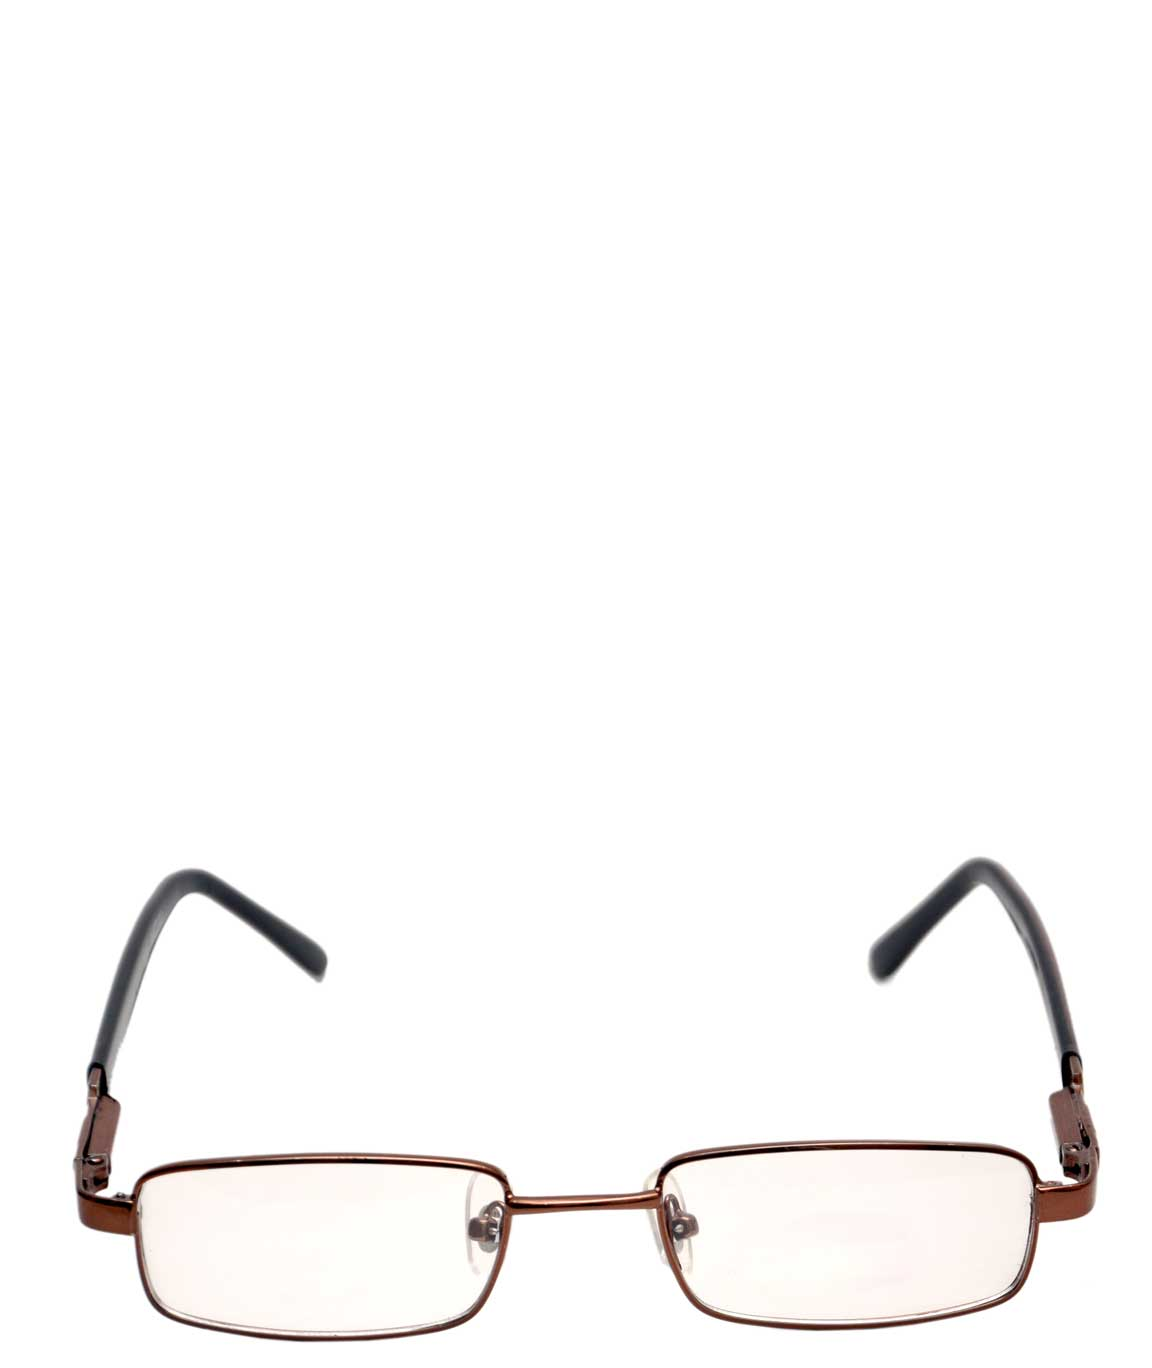 CLASSIC LIGHT BROWN FRAME CLEAR AVIATOR